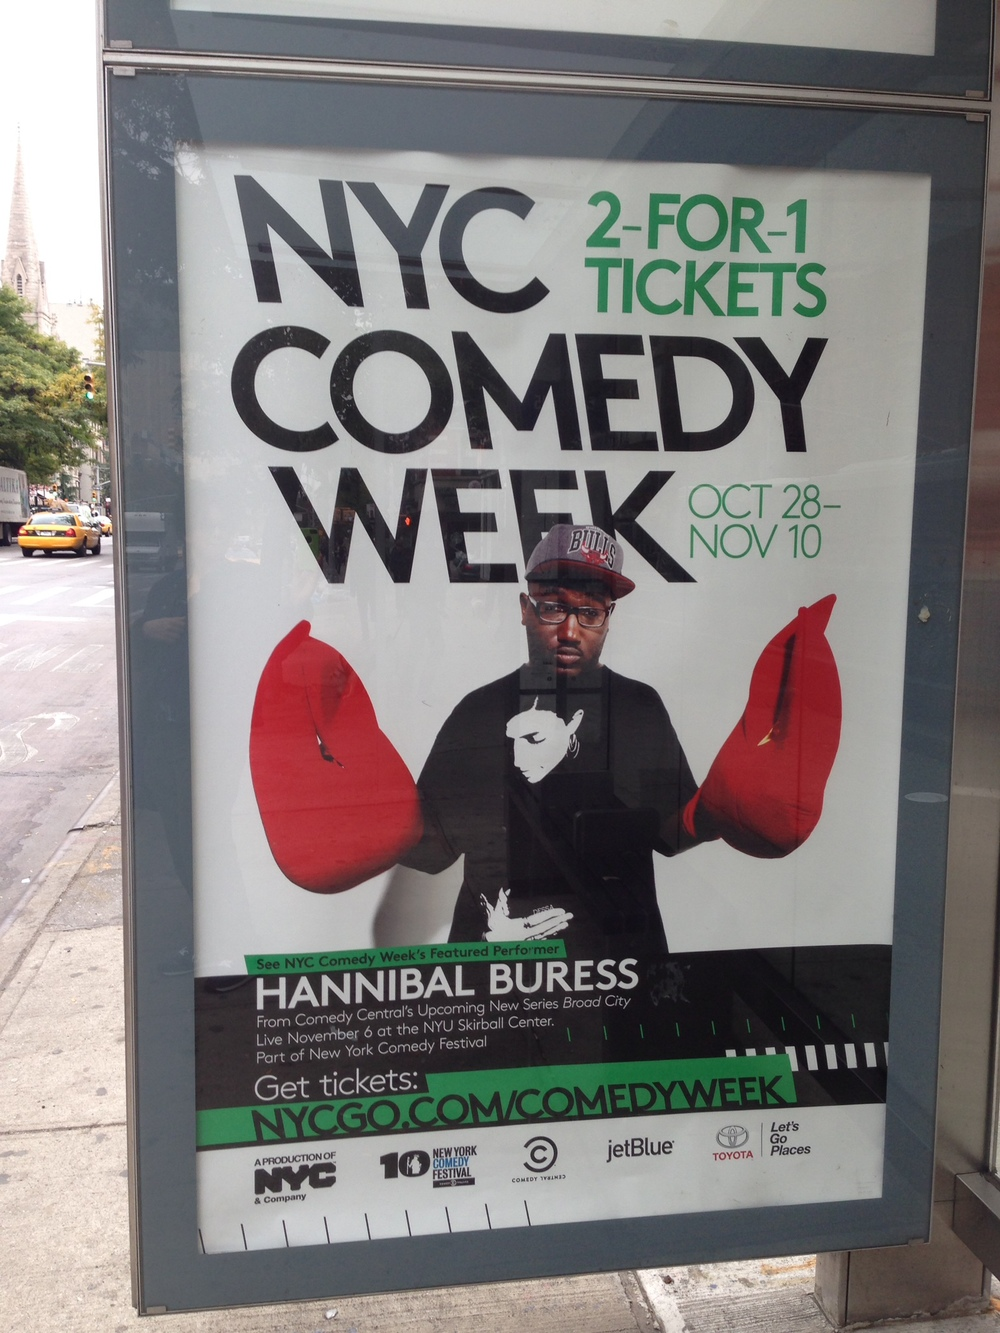 HANNIBAL BURESS LOVES ME